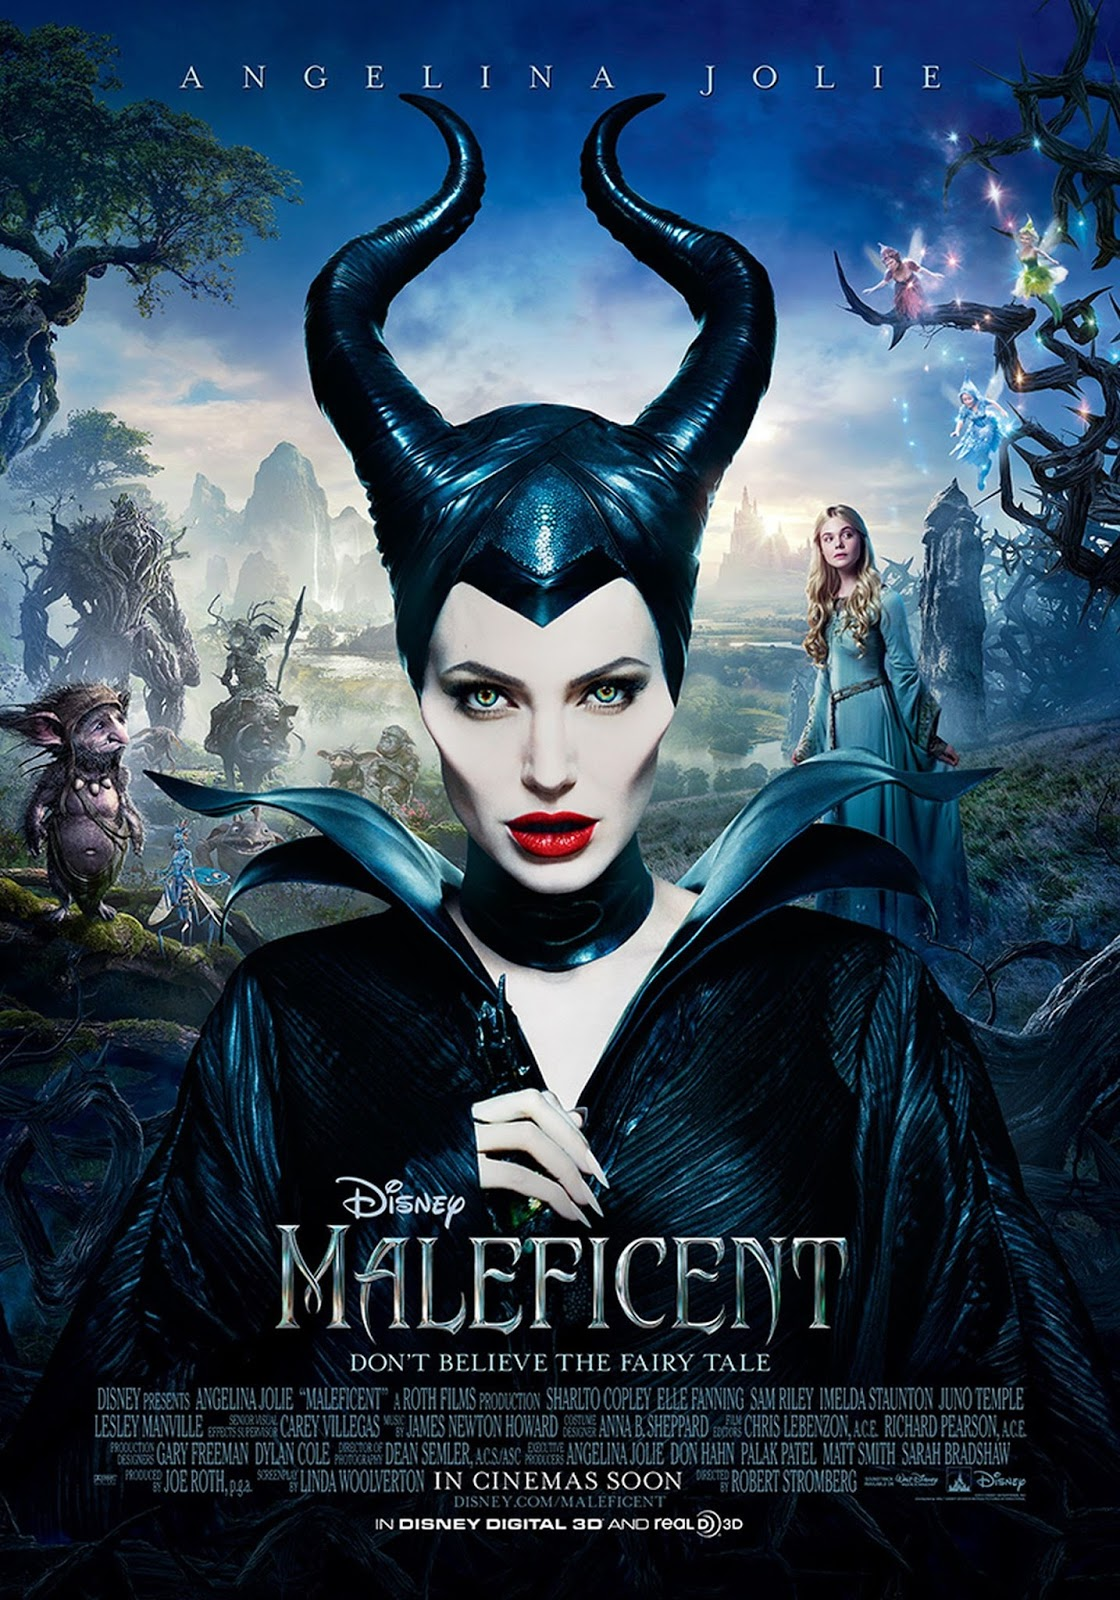 Modernism By The Realist Maleficient Movie